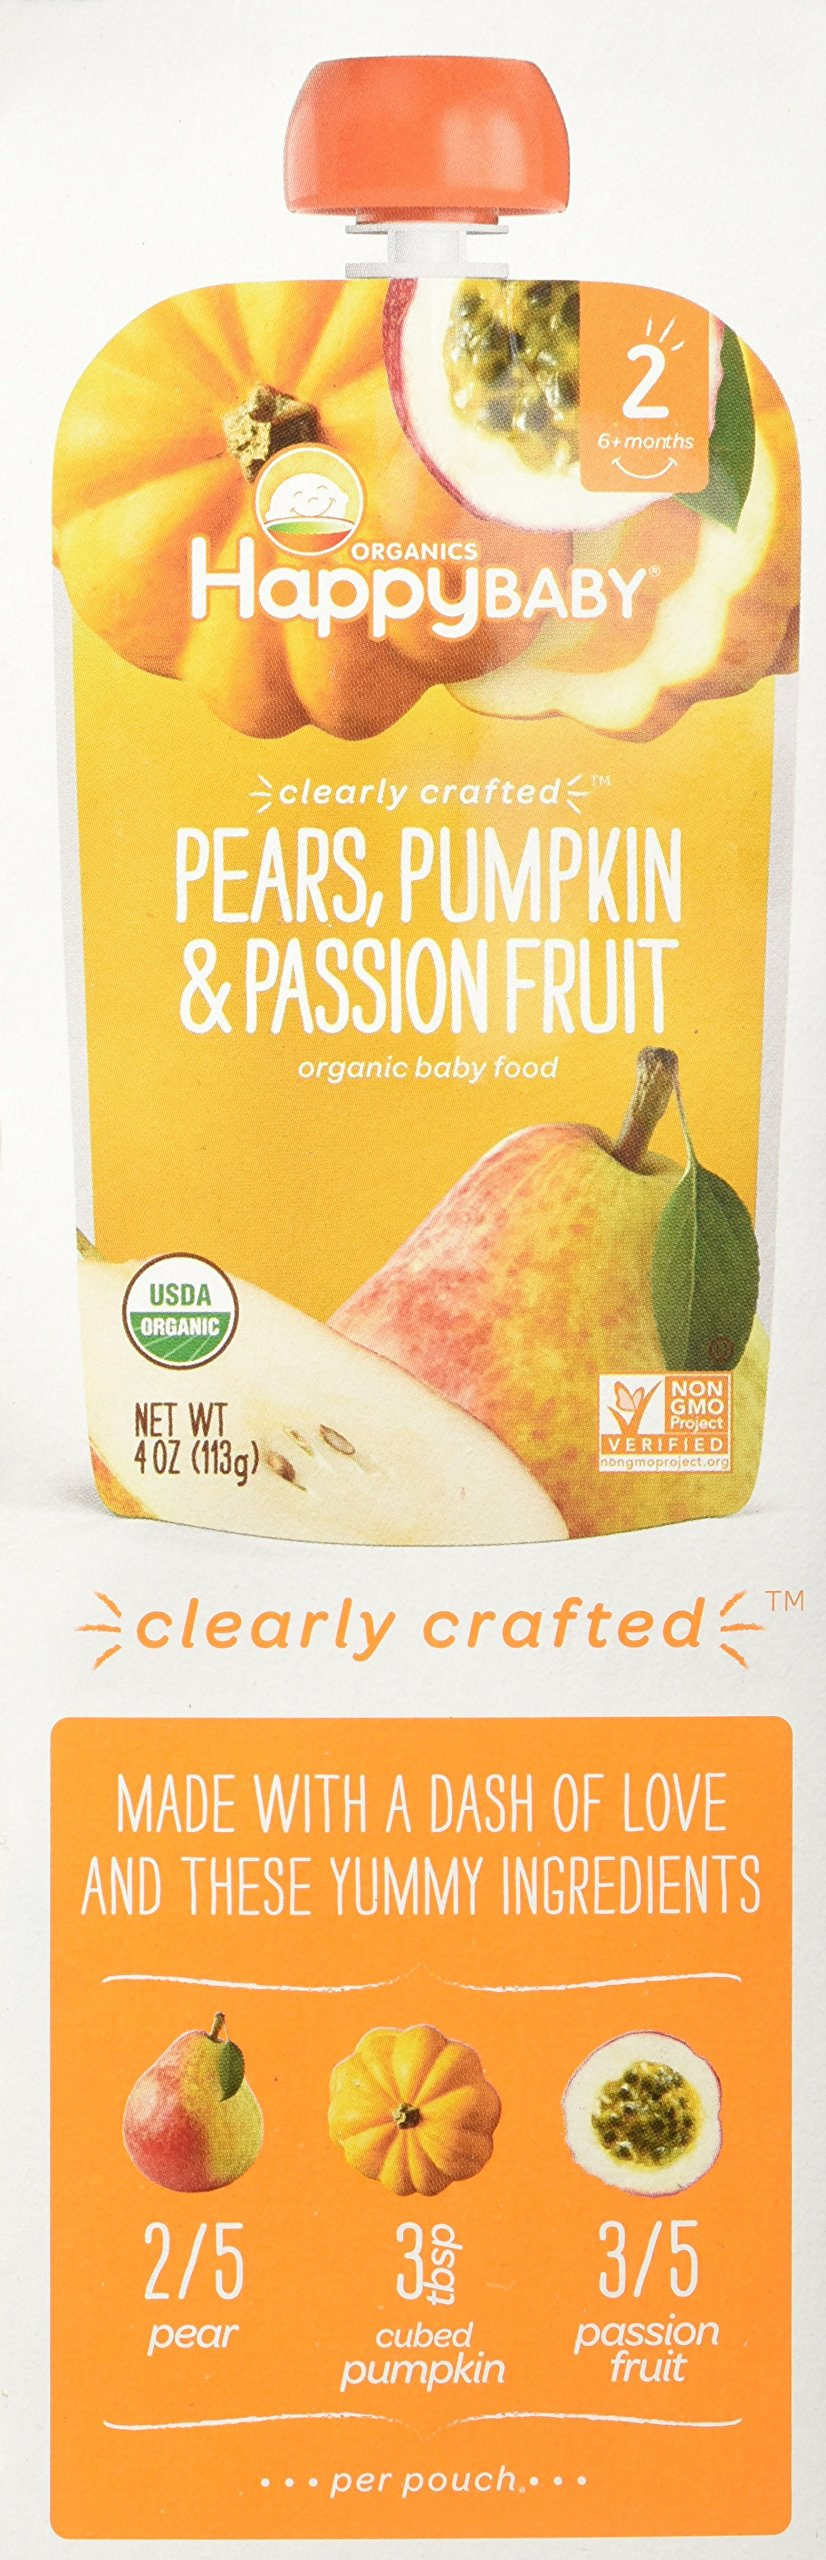 Happy Baby Stage 2 - Pears, Pumpkin & Passion Fruit - 4 oz, 8 ct by Happy Baby (Image #4)